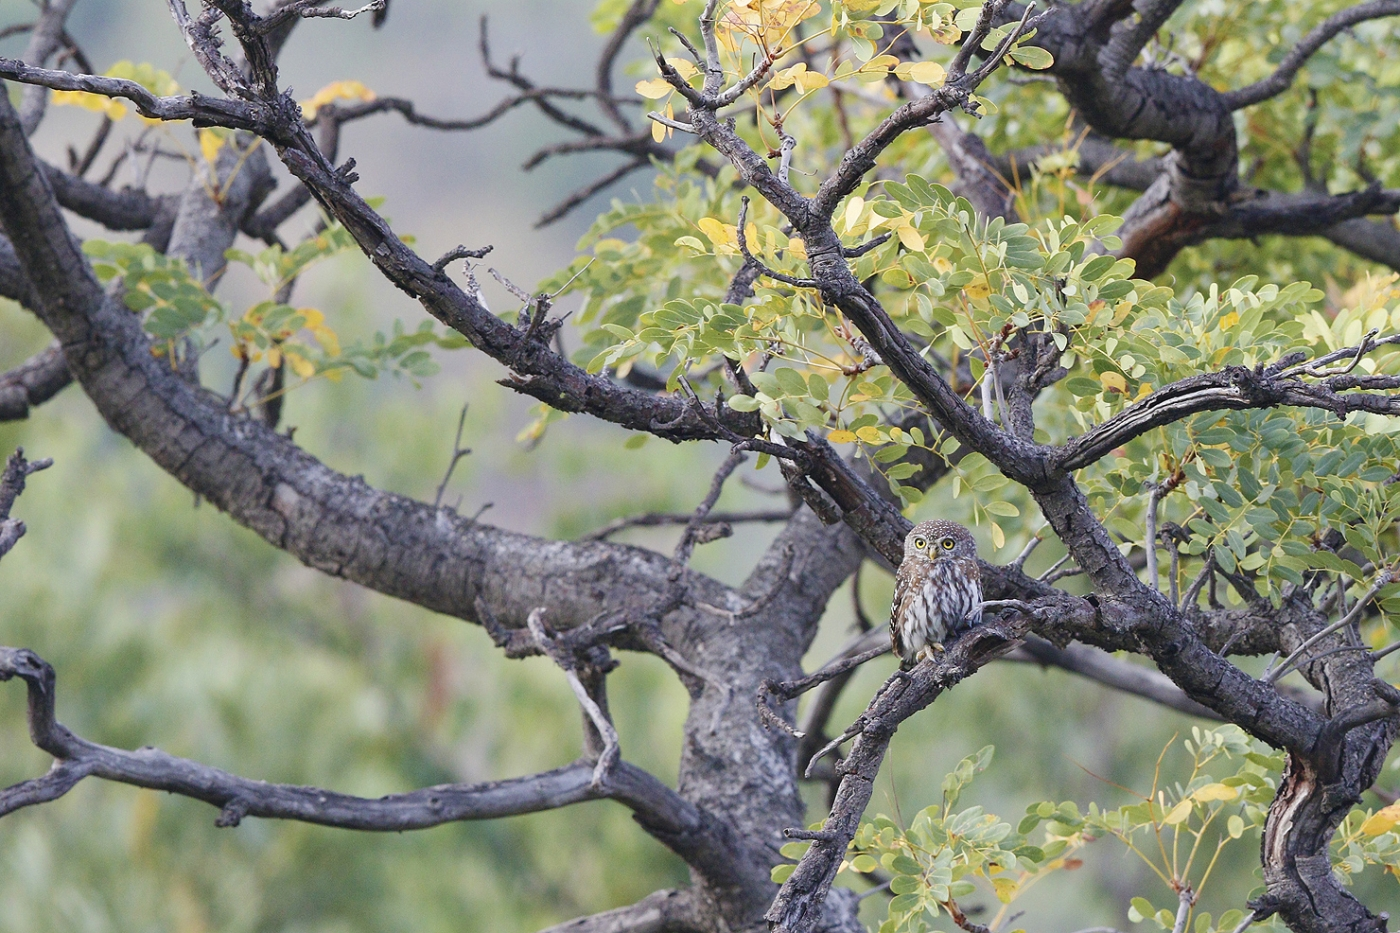 Pearlspotted Owl – Shondoro, Vaalwater, South Africa – 21 March 2015 BEST 5 SM OWL SH